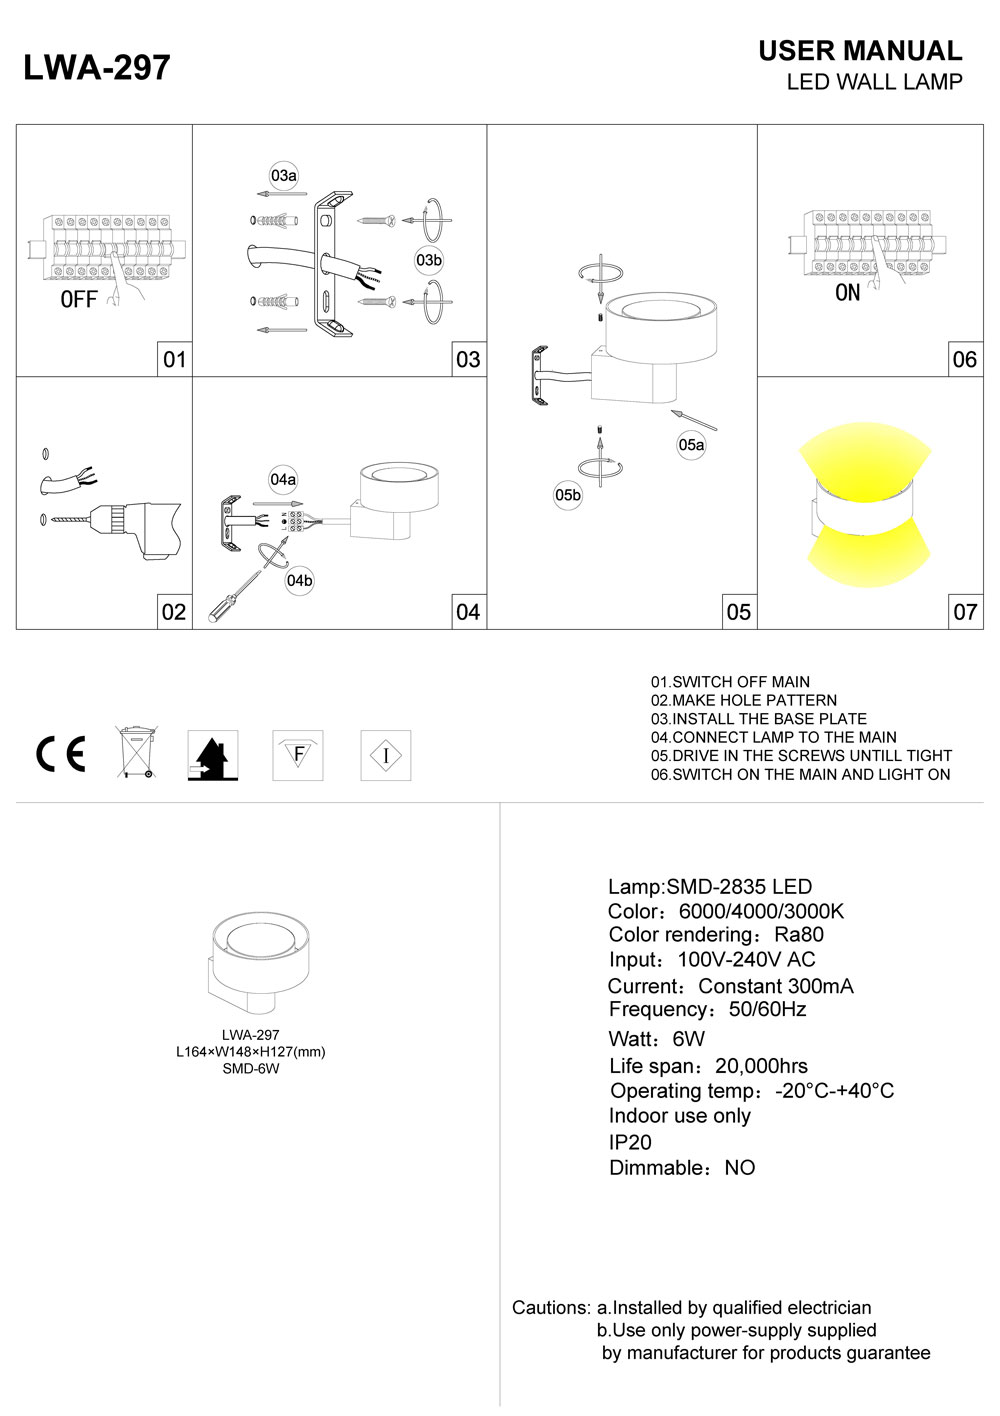 LWA-297 interior LED wall light installation guide